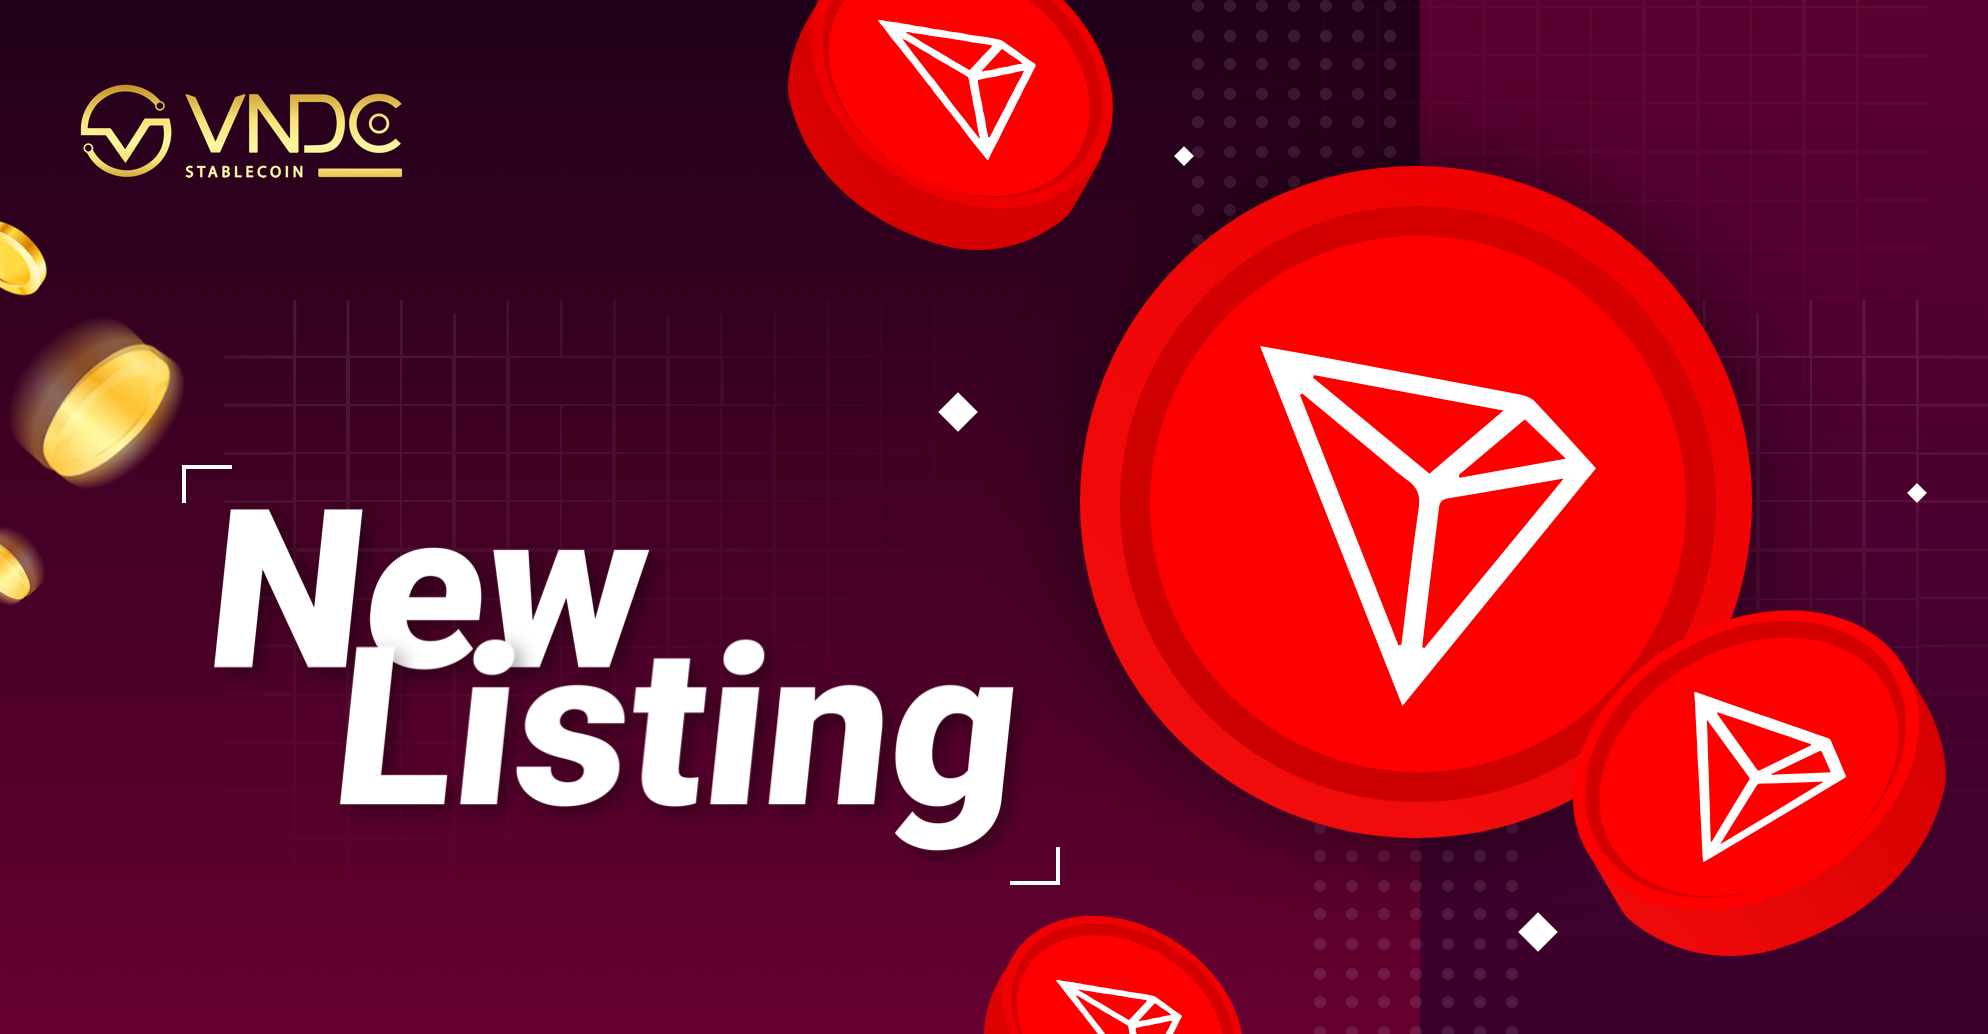 TRON (TRX) officially listed on VNDC Wallet